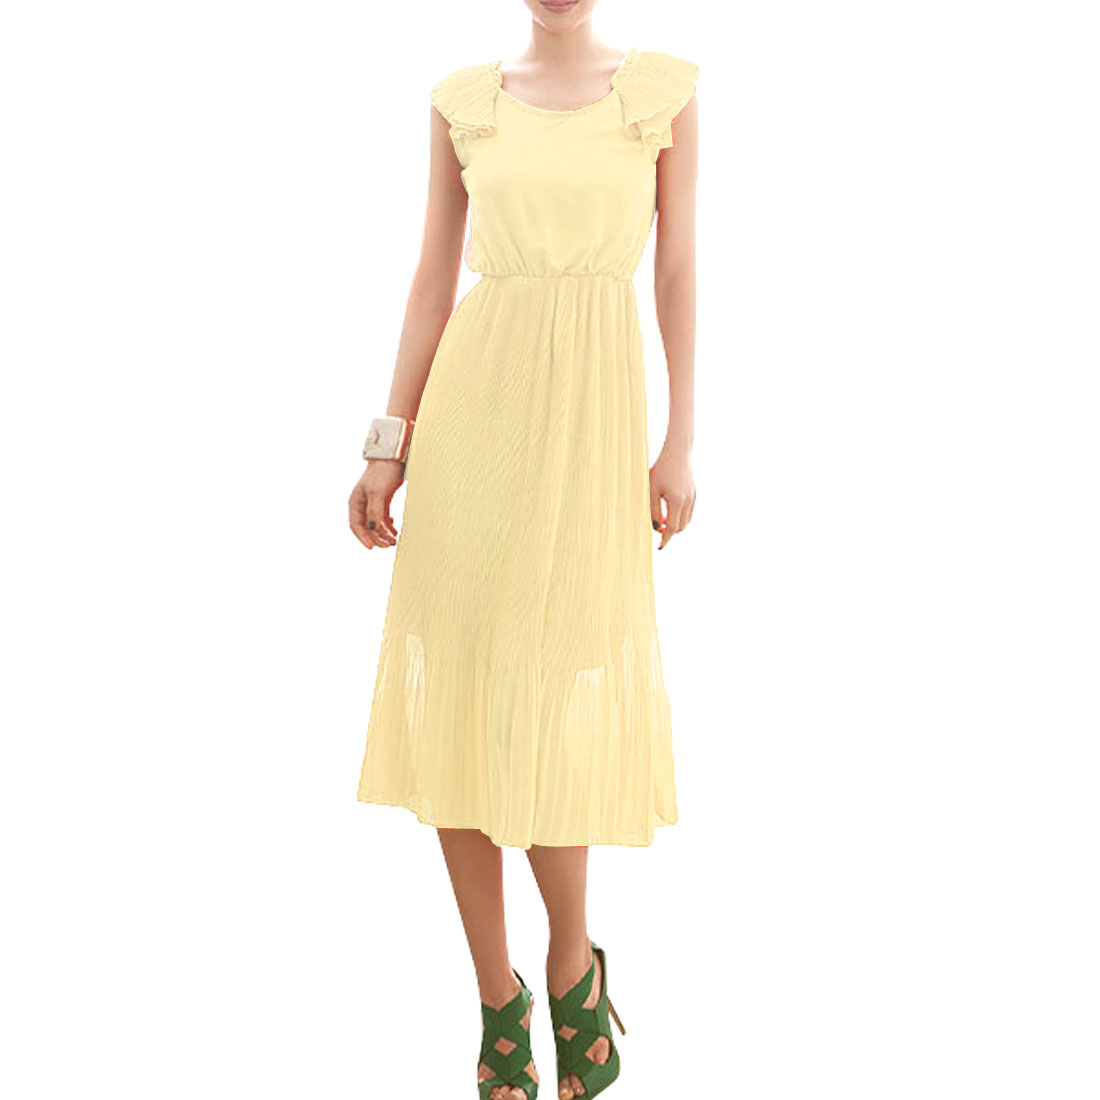 Low Round Neck Sleevesless Beige Organ Pleated Chiffon Dress XS for Ladies